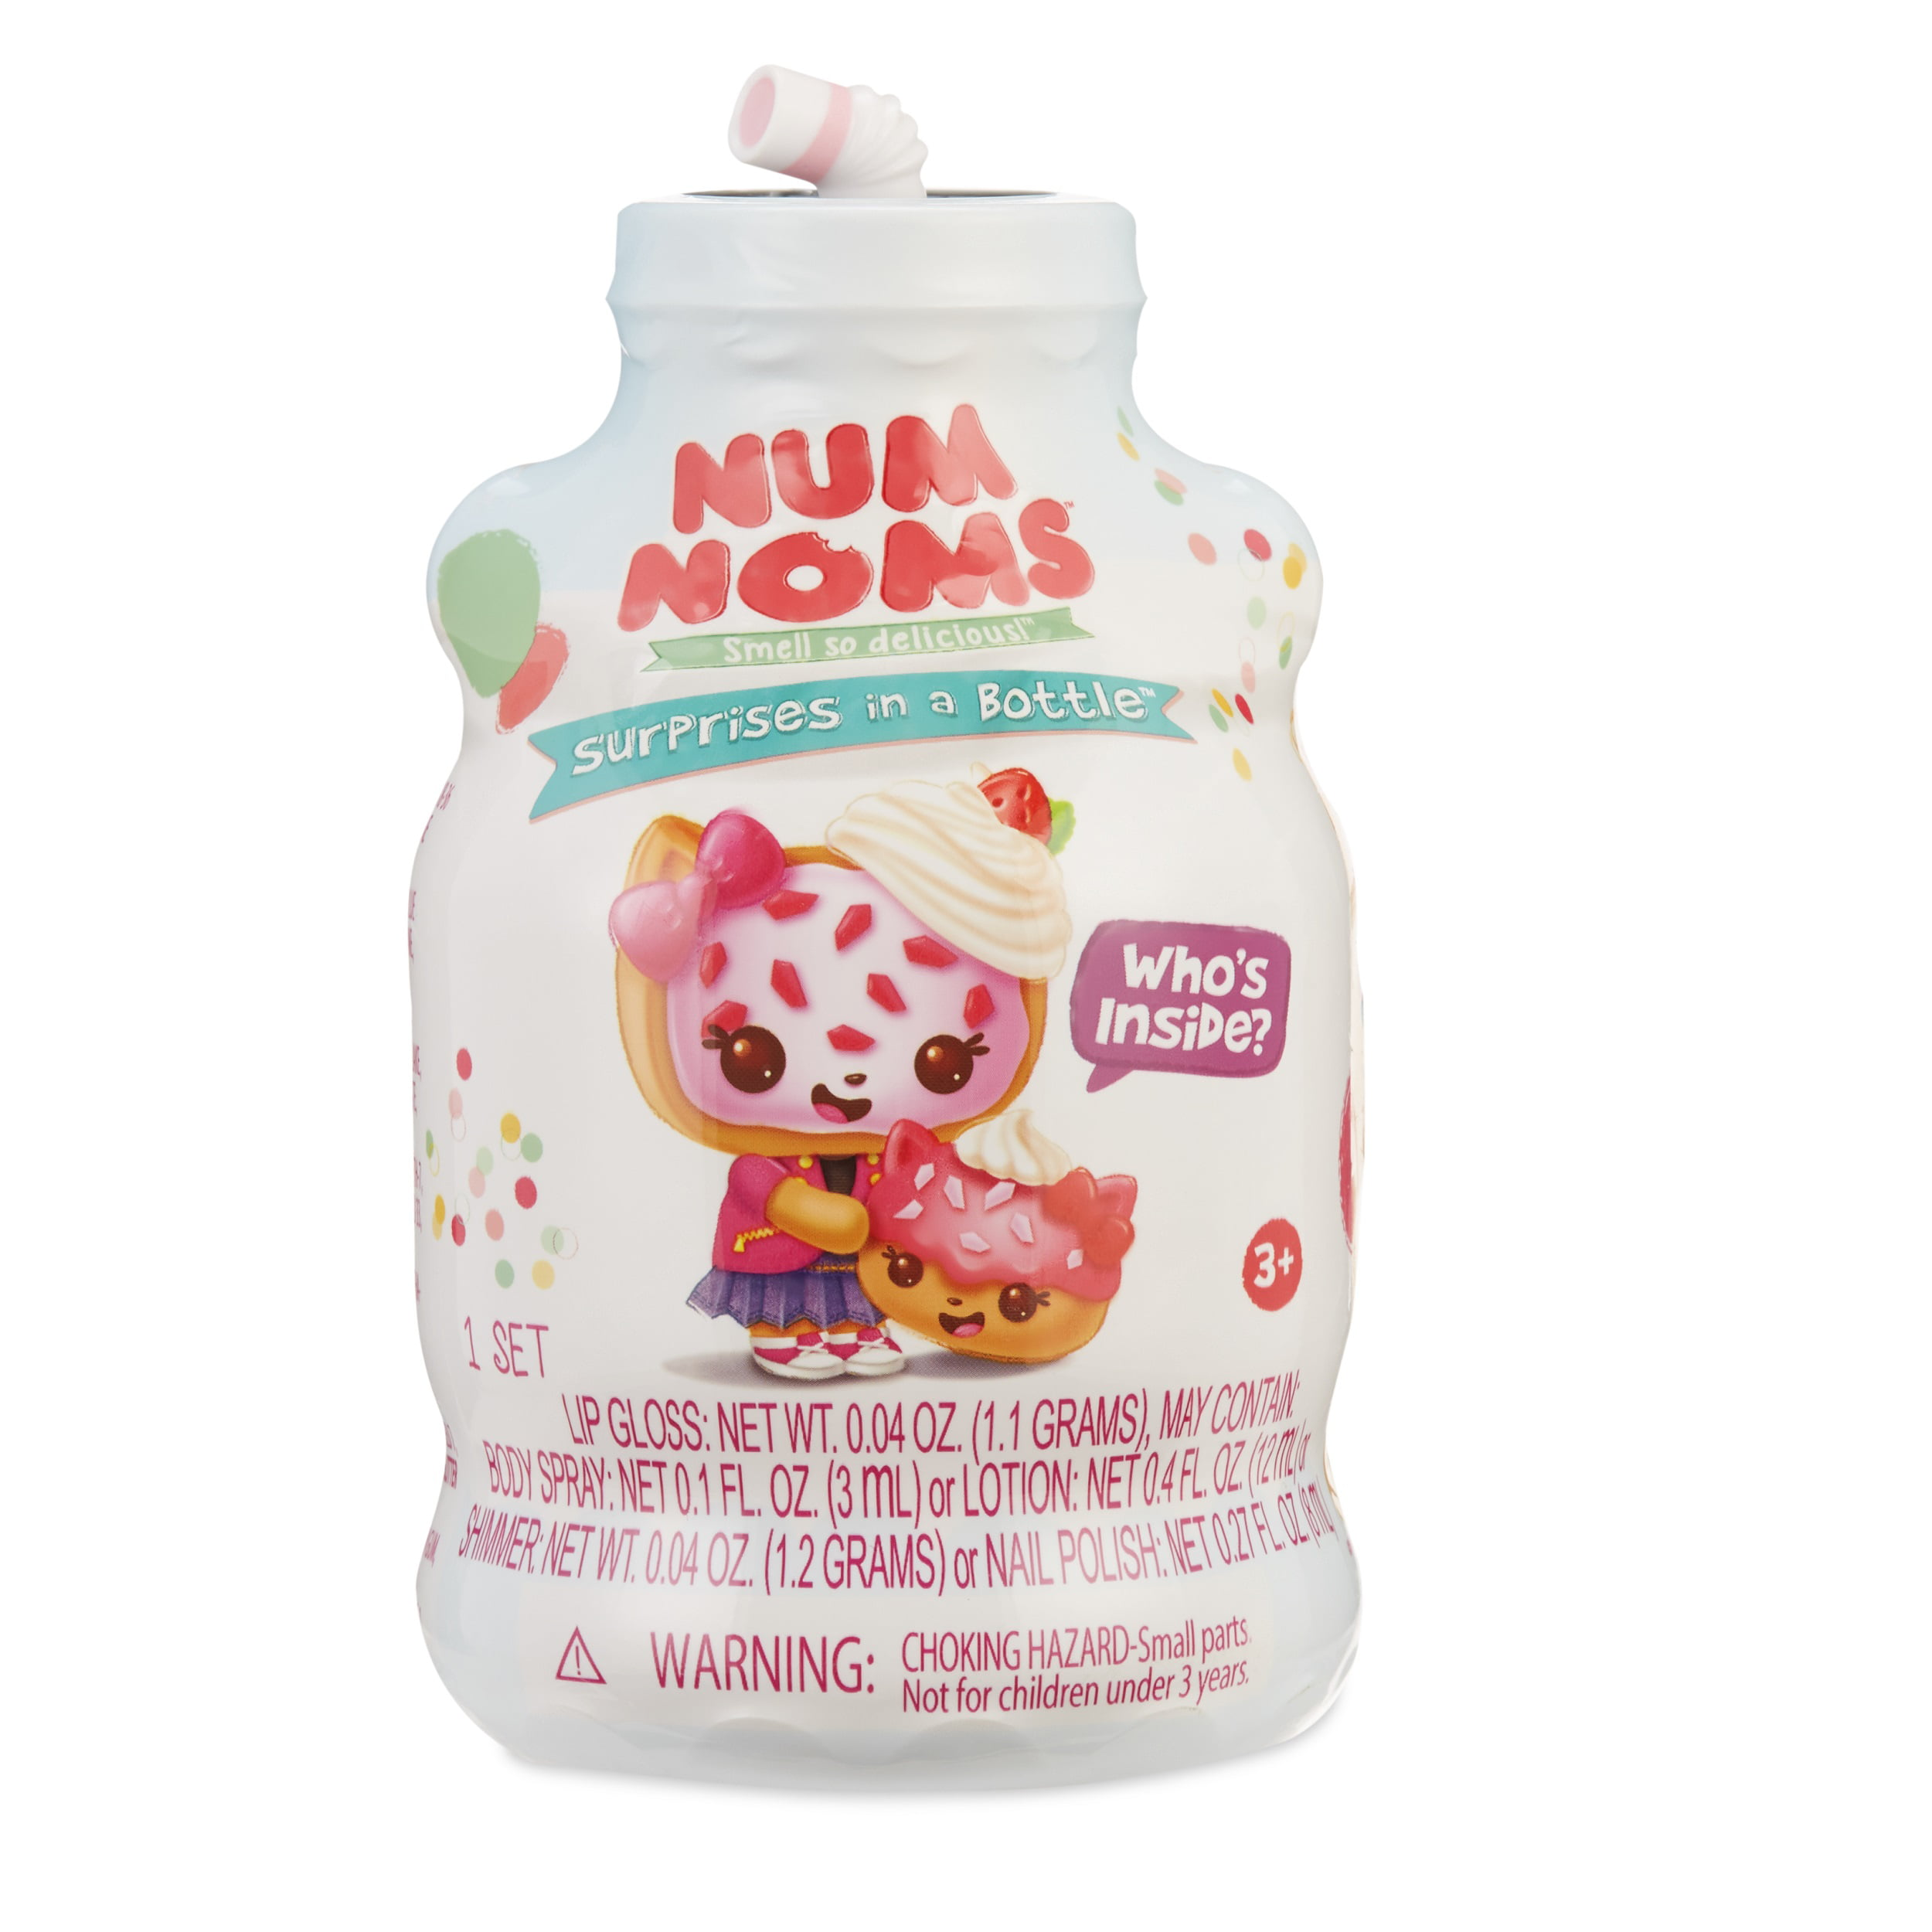 Num Noms Mystery Makeup with Hidden Cosmetics Inside